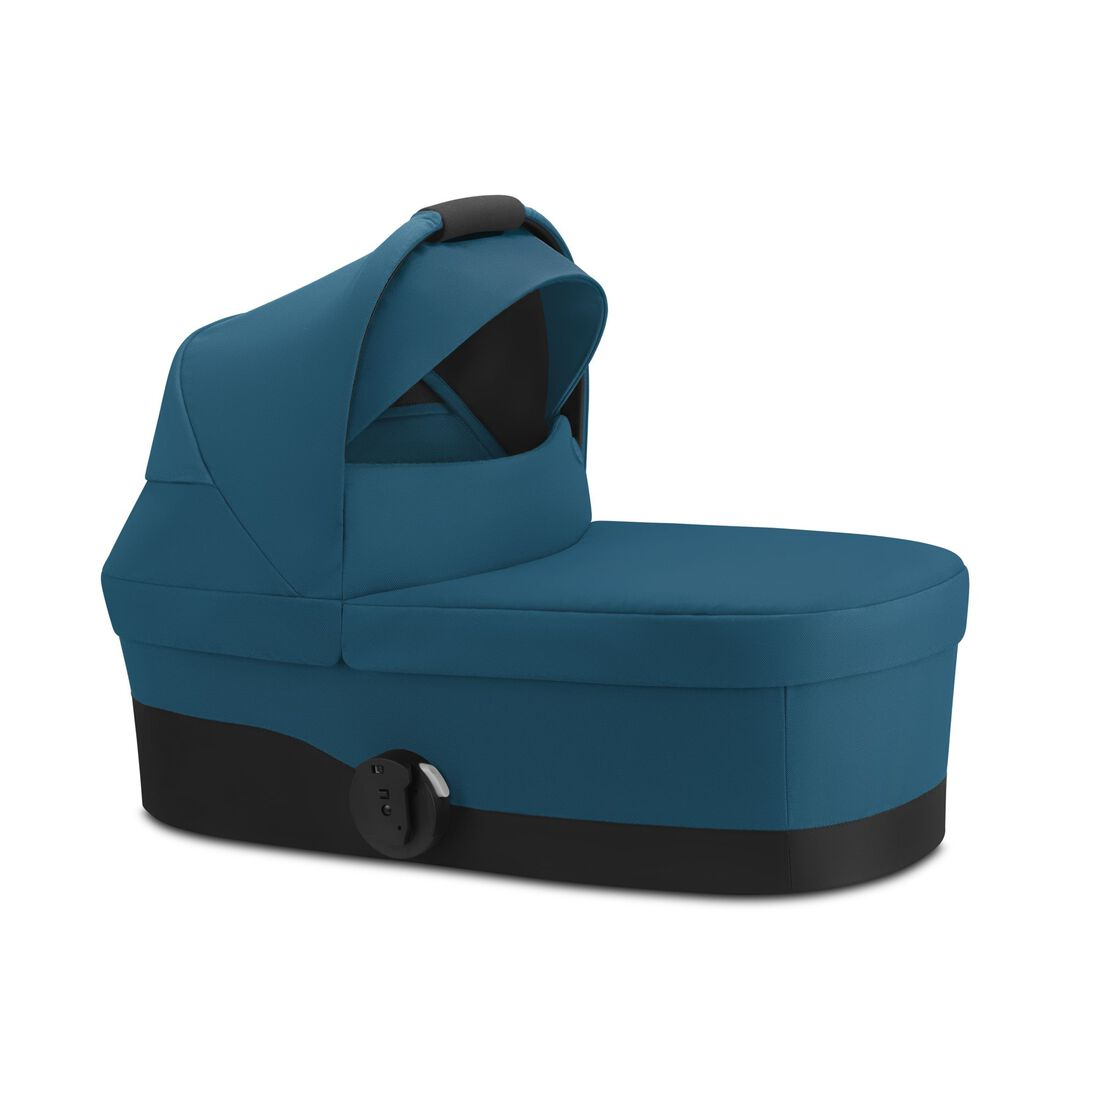 CYBEX Cot S - River Blue in River Blue large image number 2